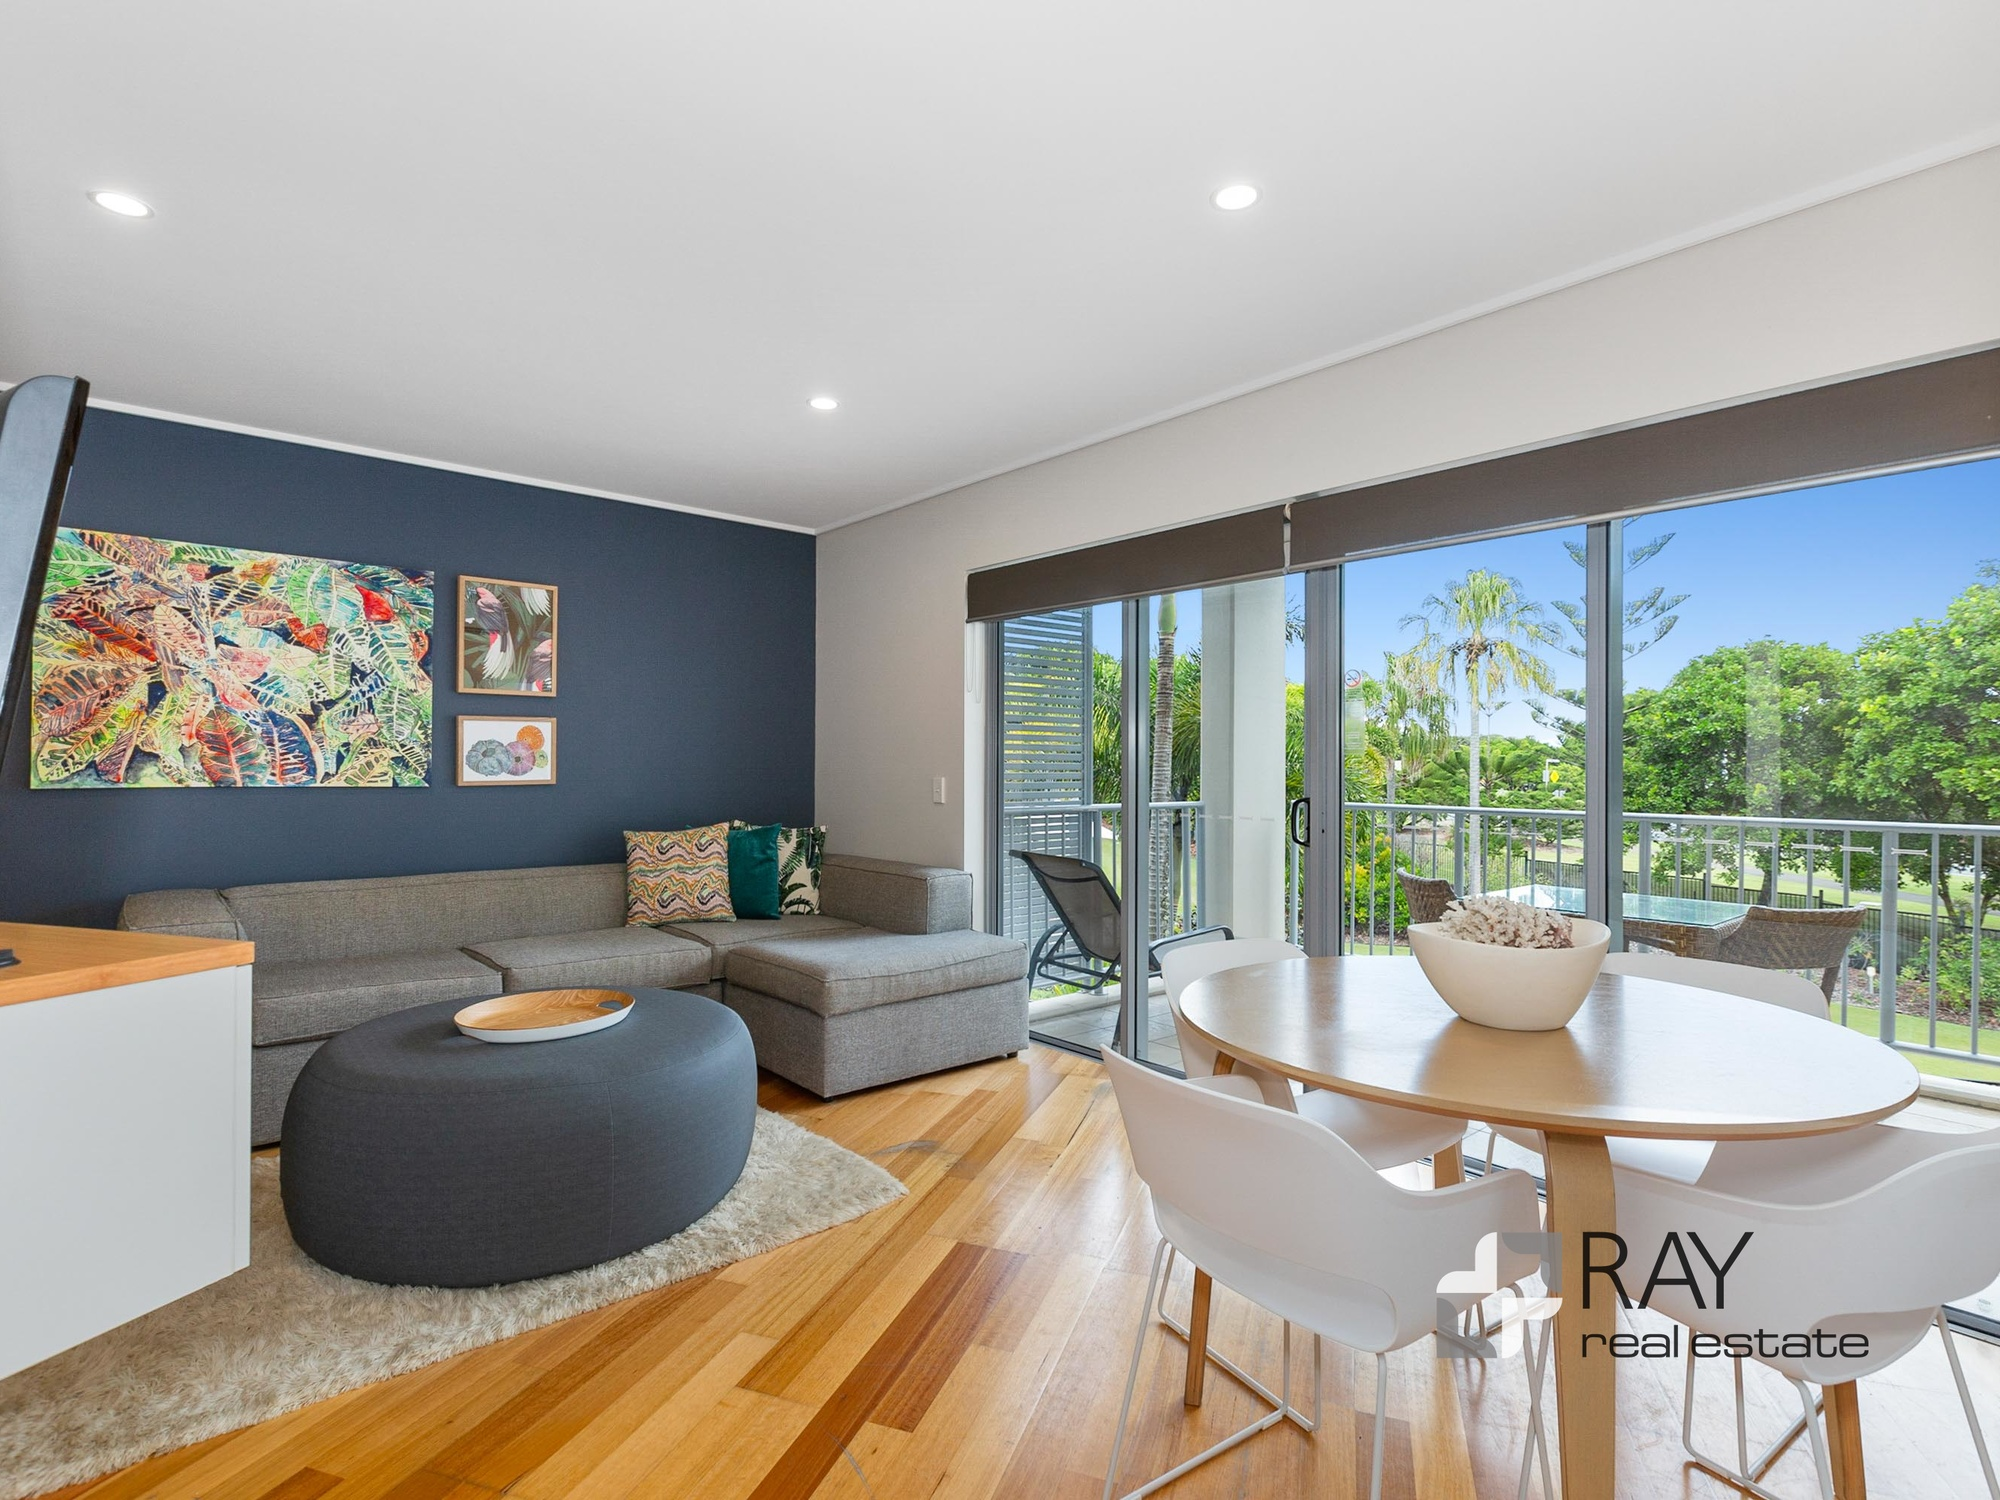 Lot 43 Peppers (7106/07) Relax, Rejuvenate, and get Rewarded at this 2-bedroom (dual key) Peppers Salt Resort Apartment.